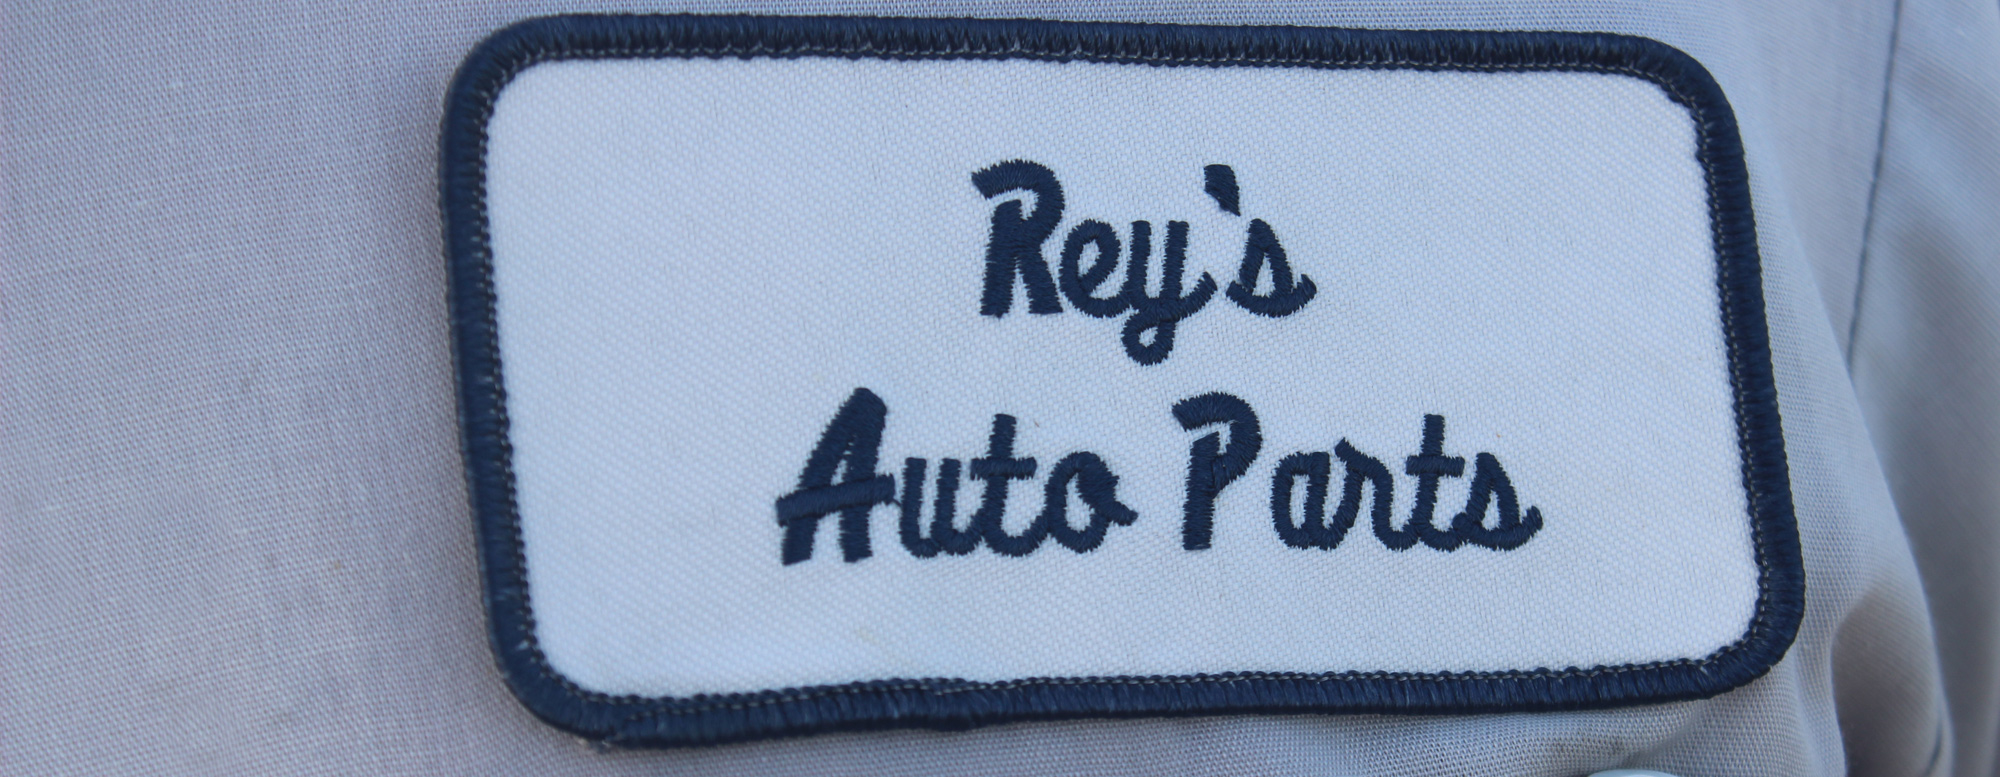 Home - Reys AutoParts